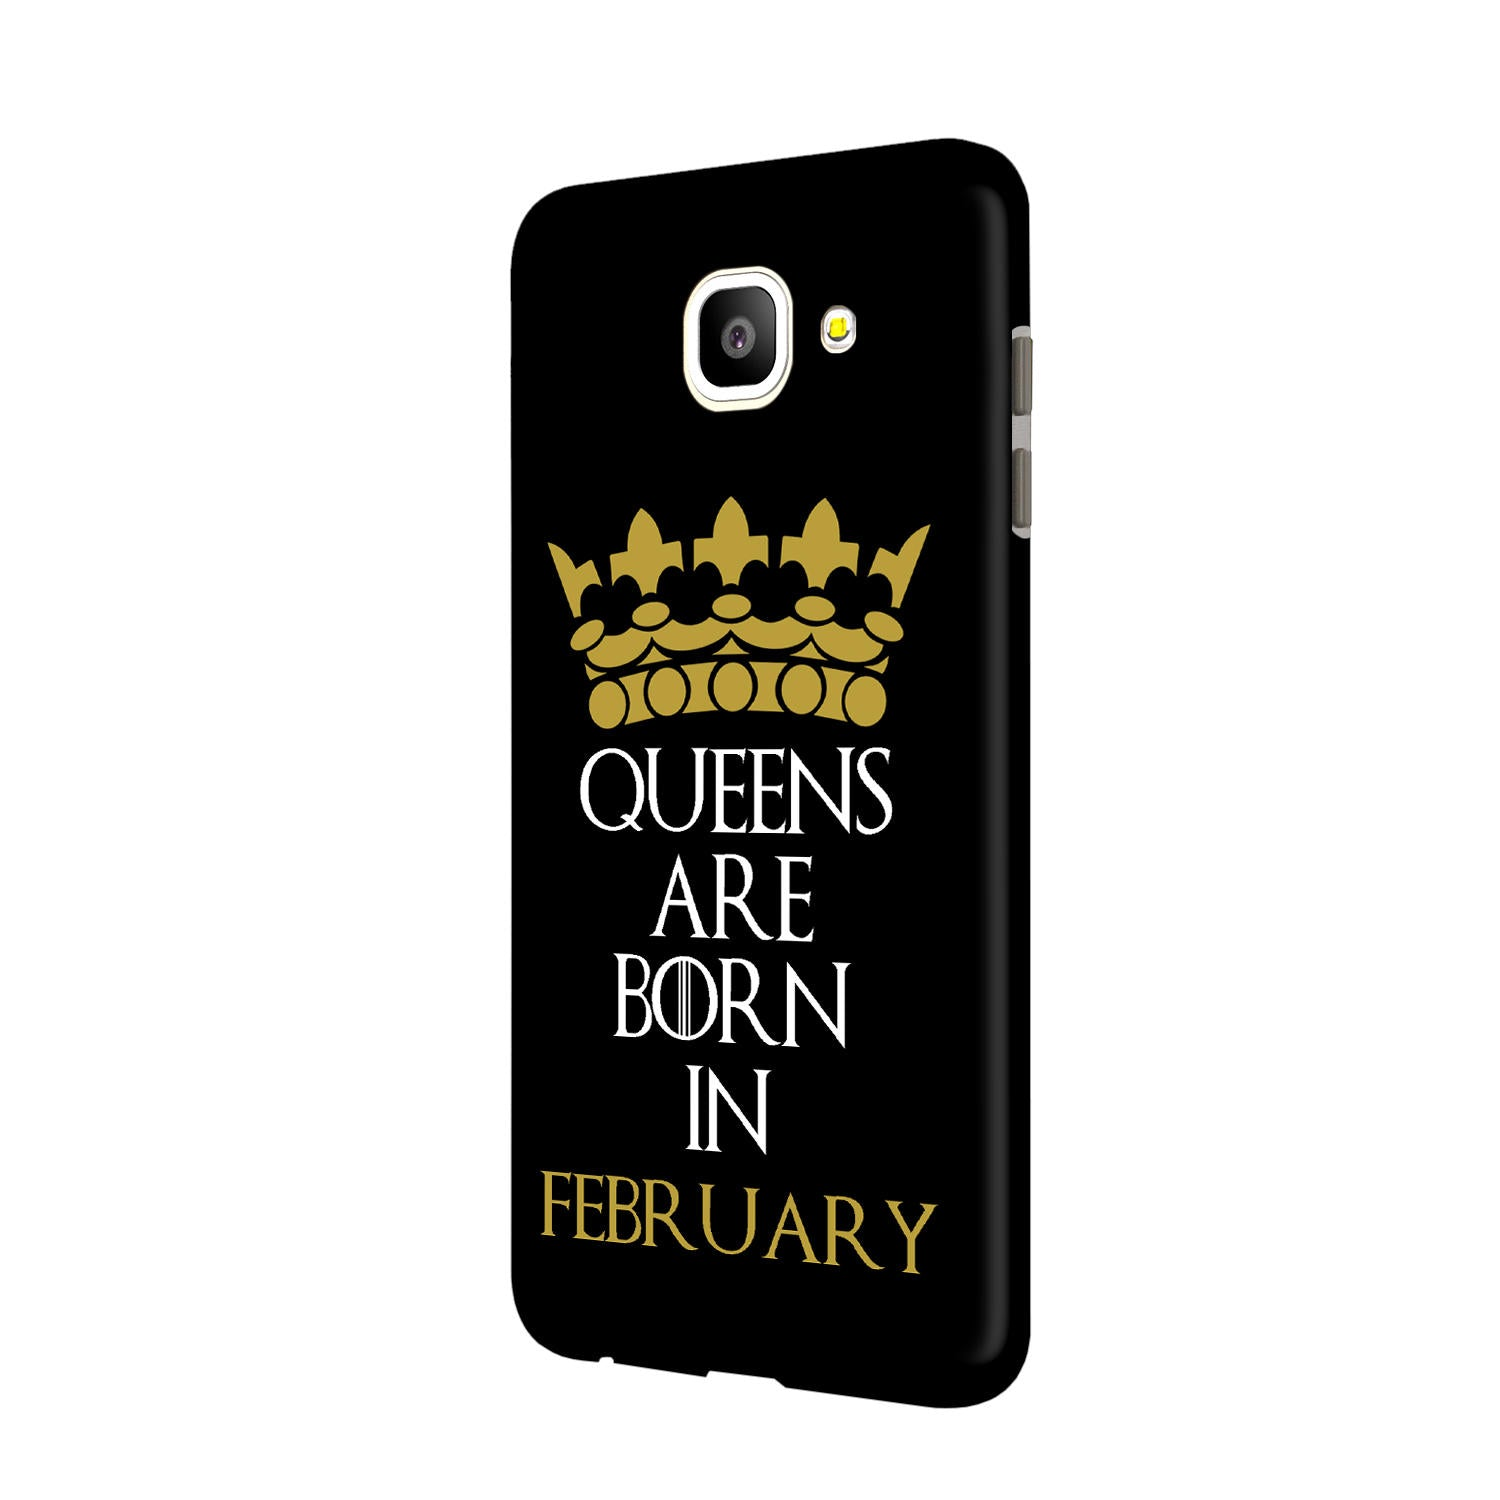 Queens February Samsung Galaxy J7 Max Mobile Cover Case